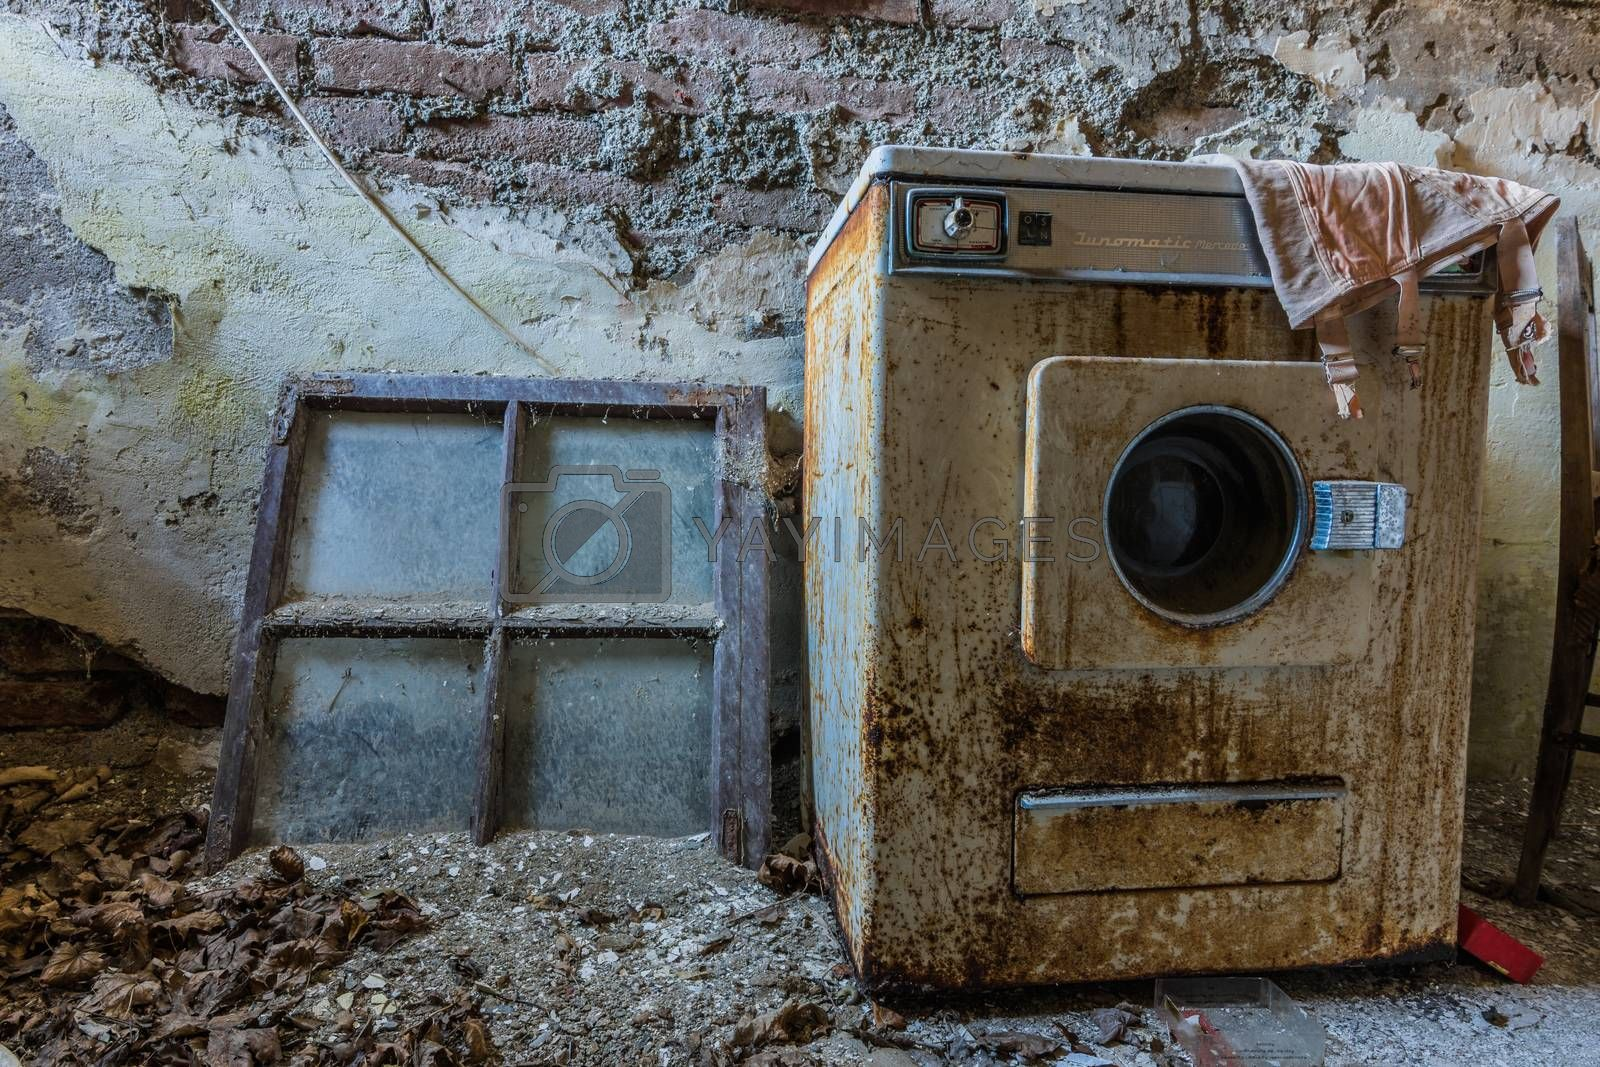 rusty old washing machine in an abandoned hotel